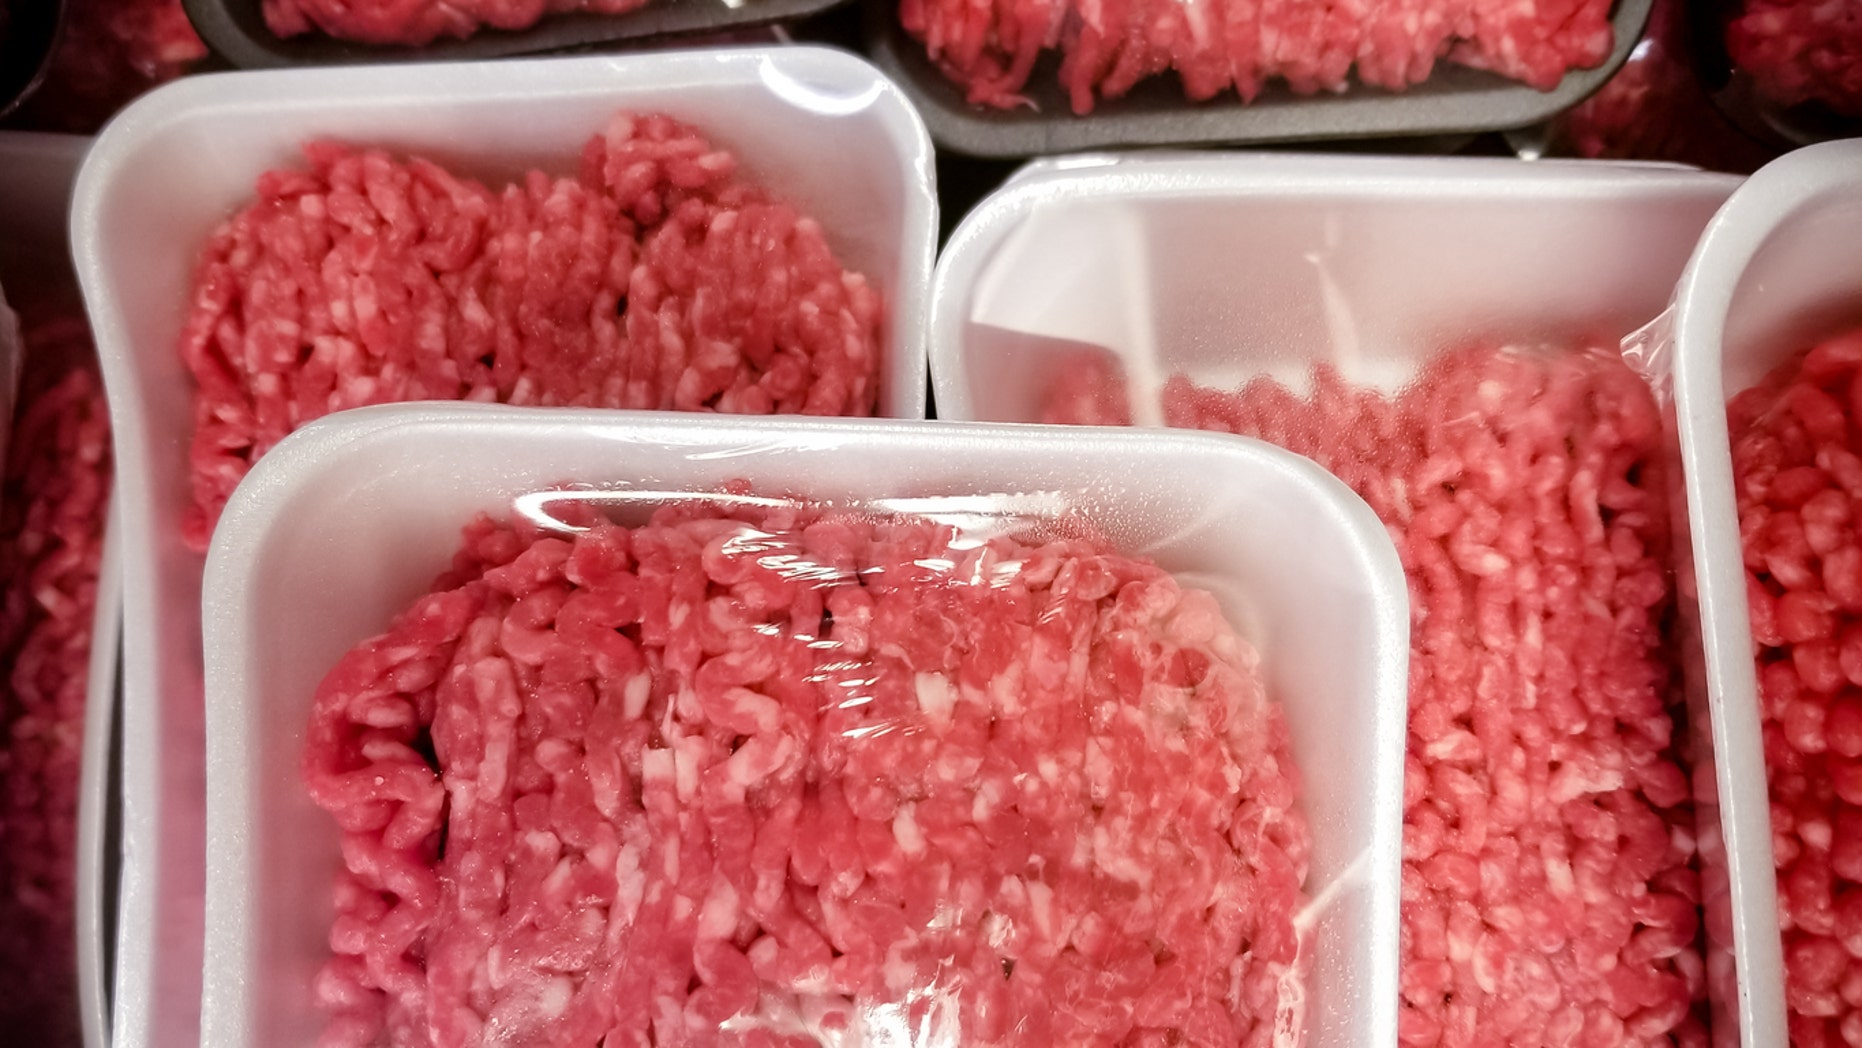 CDC: Ground beef behind E. coli outbreak